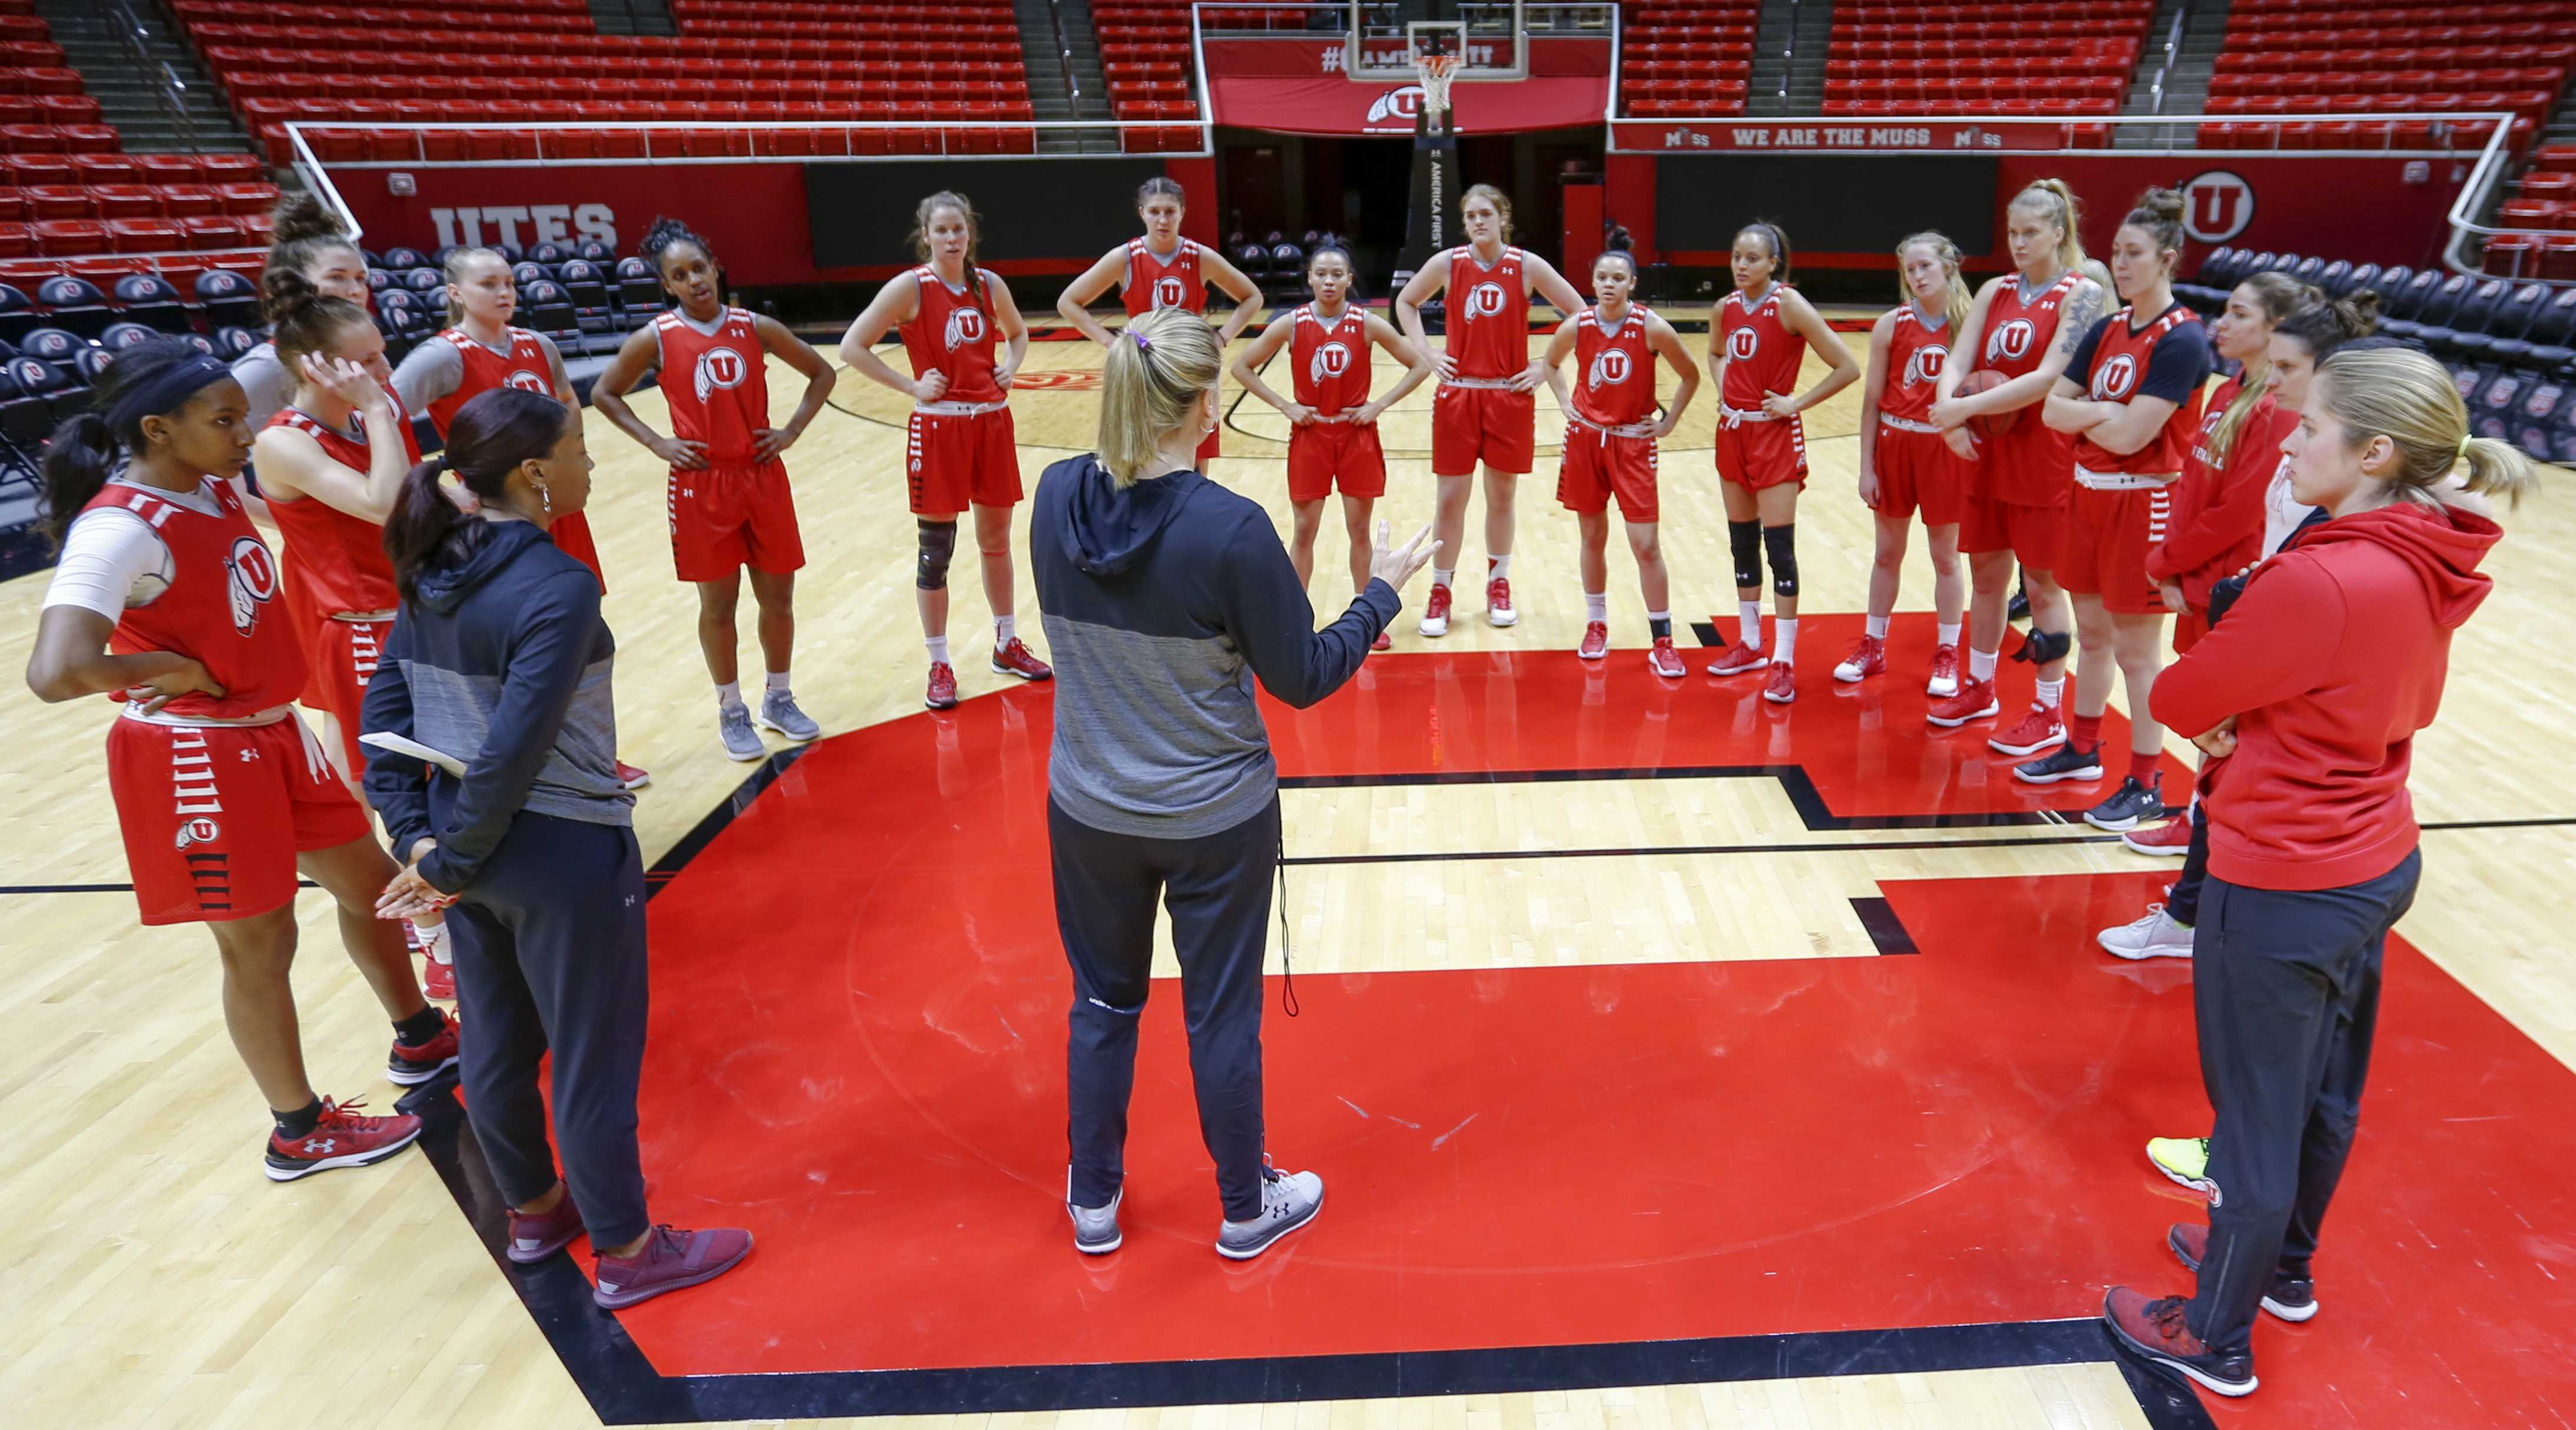 University of Utah Womens Basketball practice at the Jon M. Huntsman Center in Salt Lake City, UT on Wednesday, Jan. 10, 2018  (Photo by Adam Fondren | Daily Utah Chronicle)